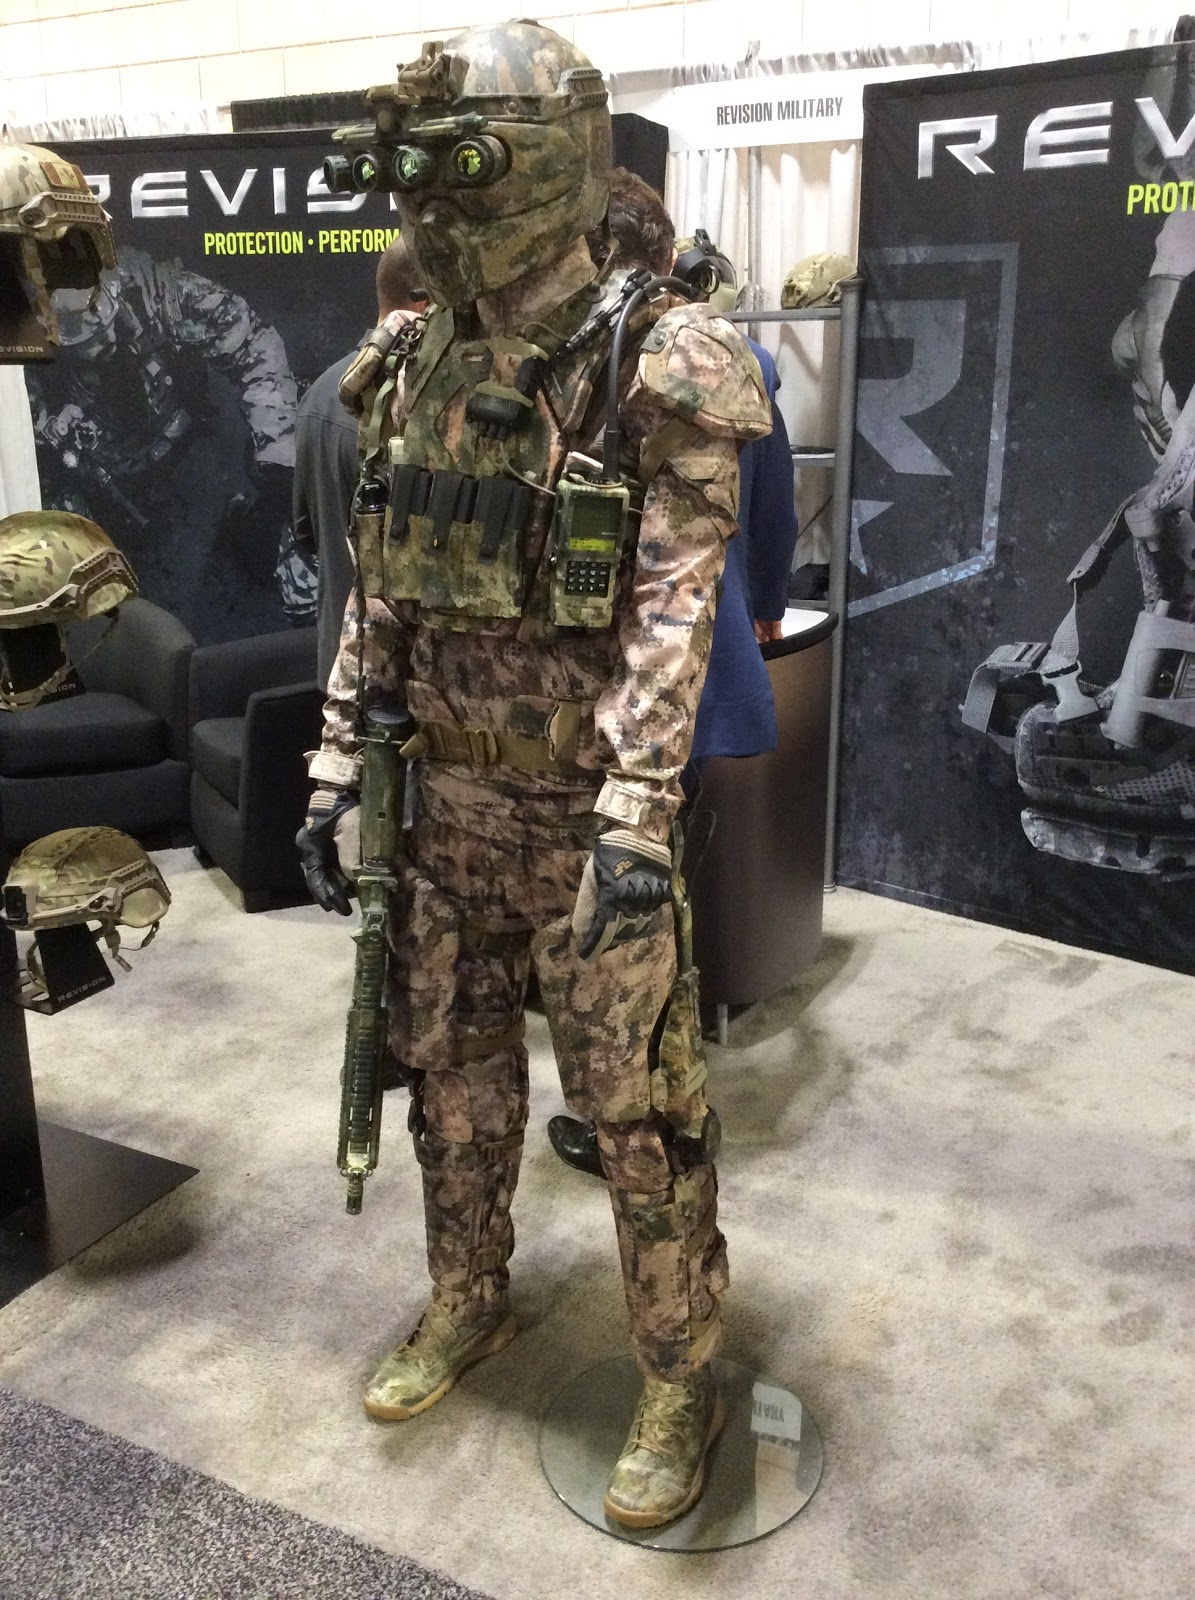 Lightweight and quiet power to enable armored military ... Military Exosuit